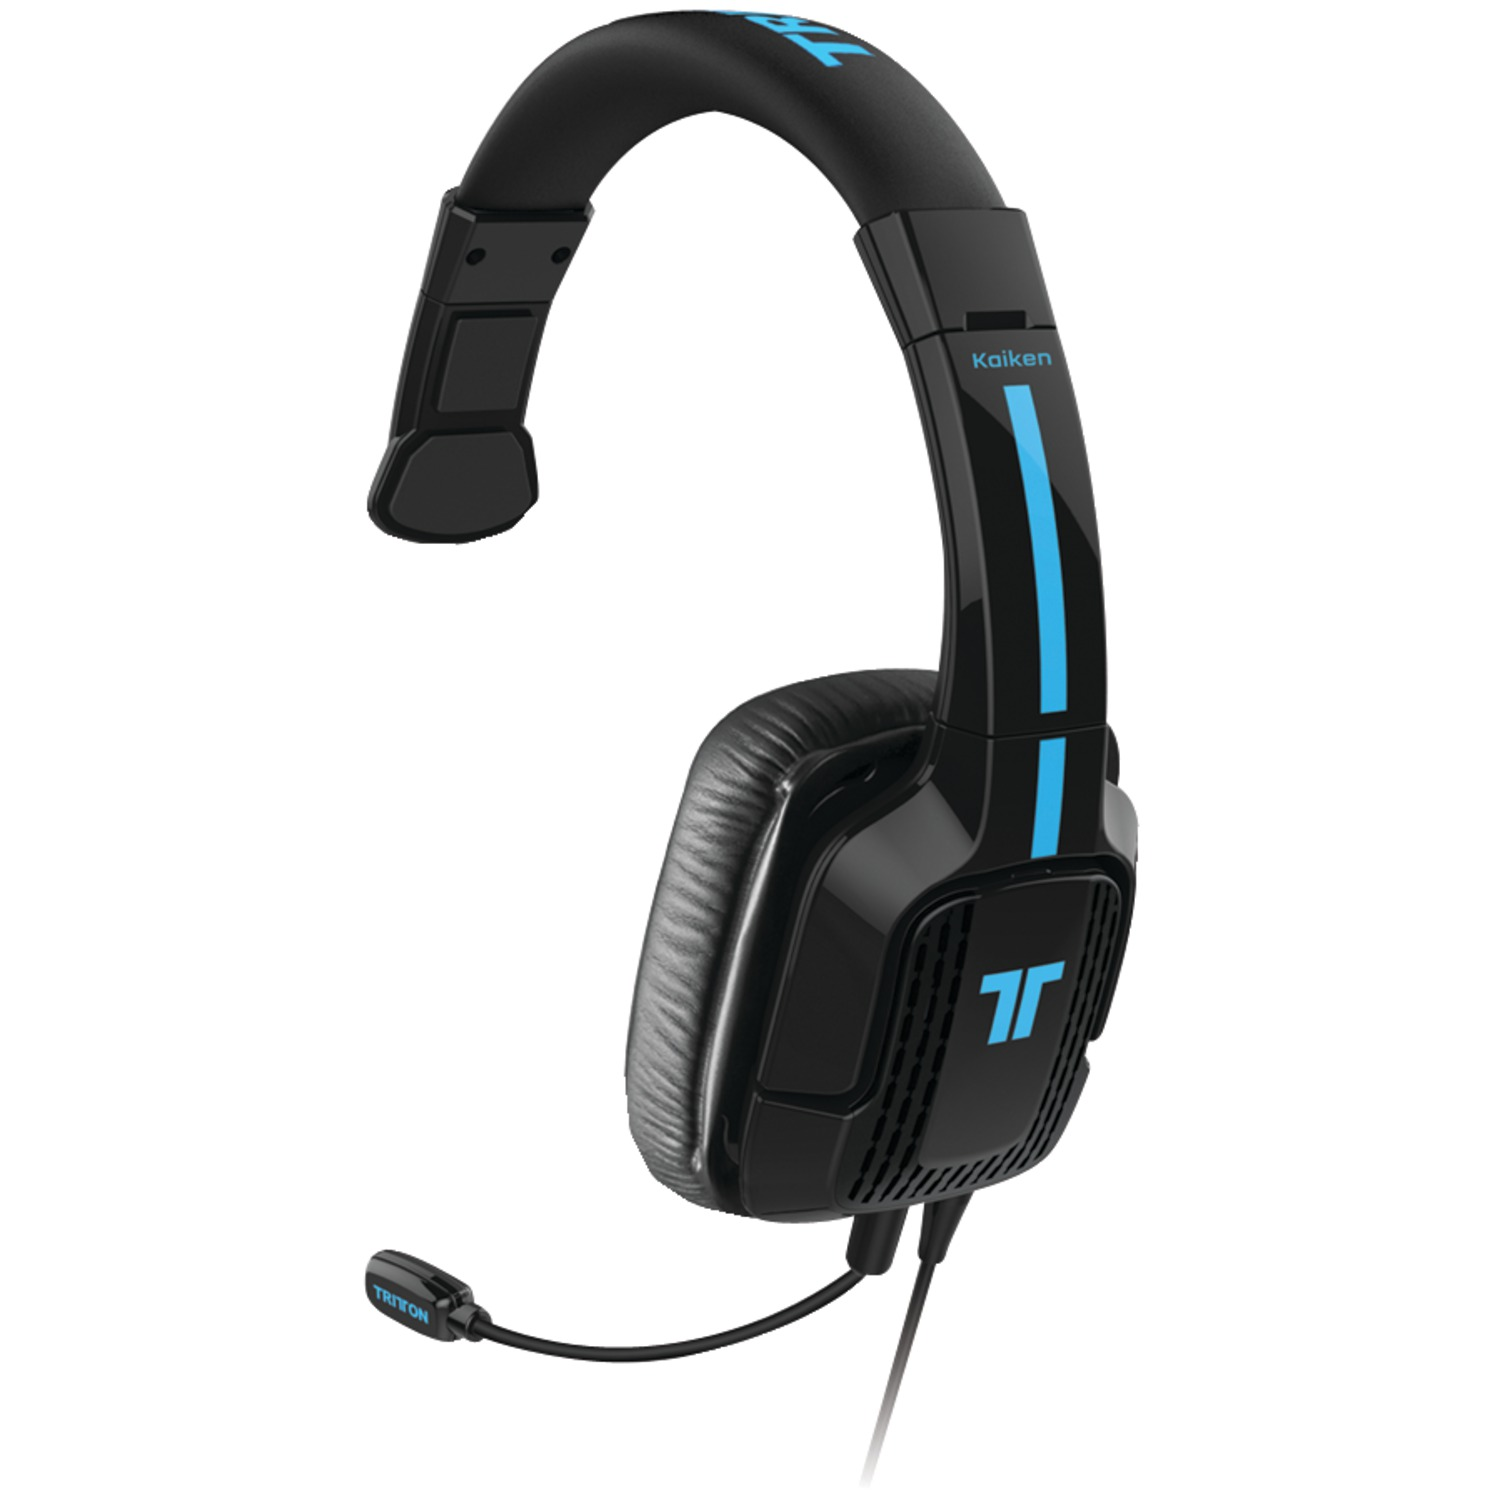 madcatz tri898020002 02 1 tritton r kaiken tm mono chat headset for ps4 tm. Black Bedroom Furniture Sets. Home Design Ideas